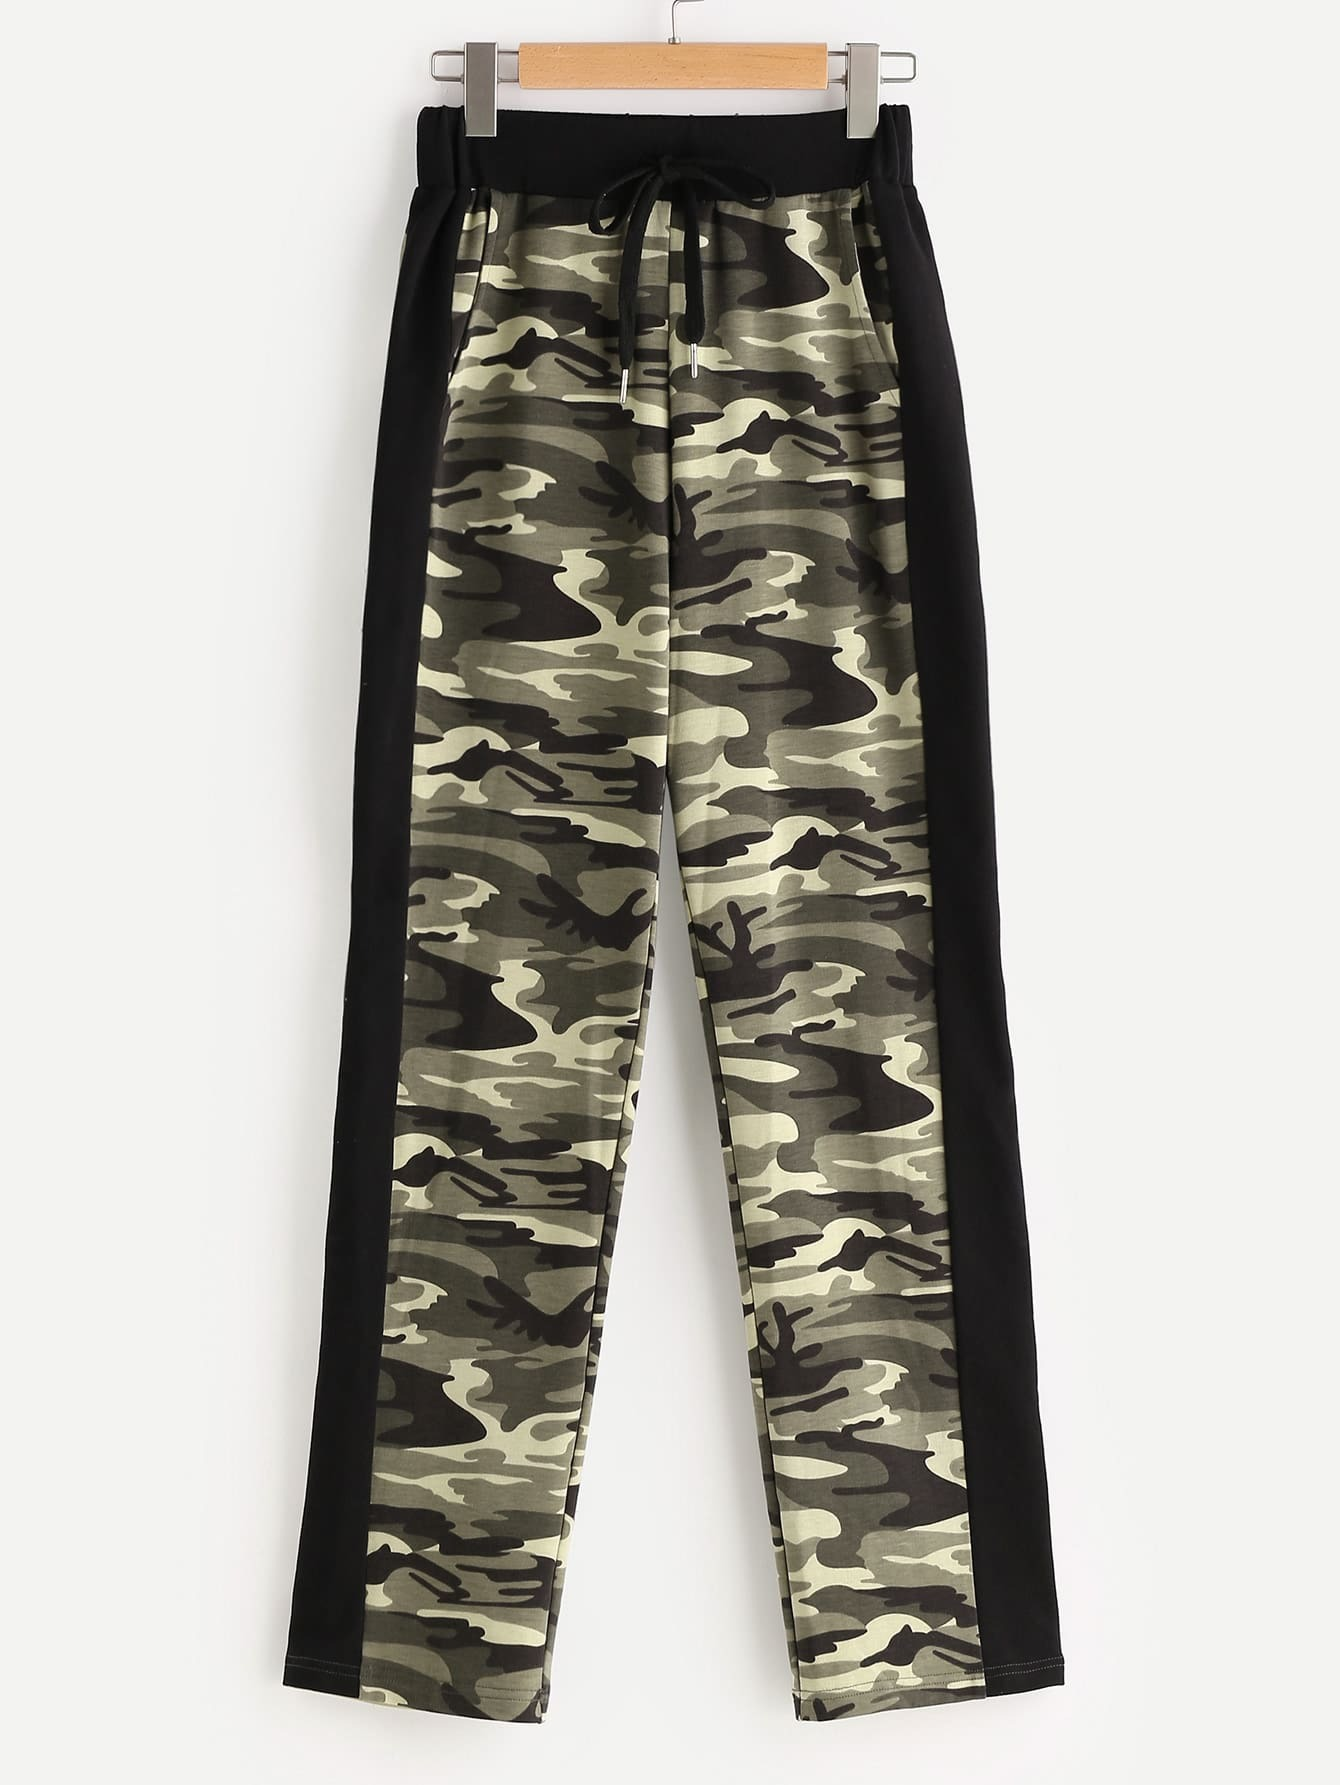 Olive Green Camo Print Contrast Panel Drawstring Sweatpants